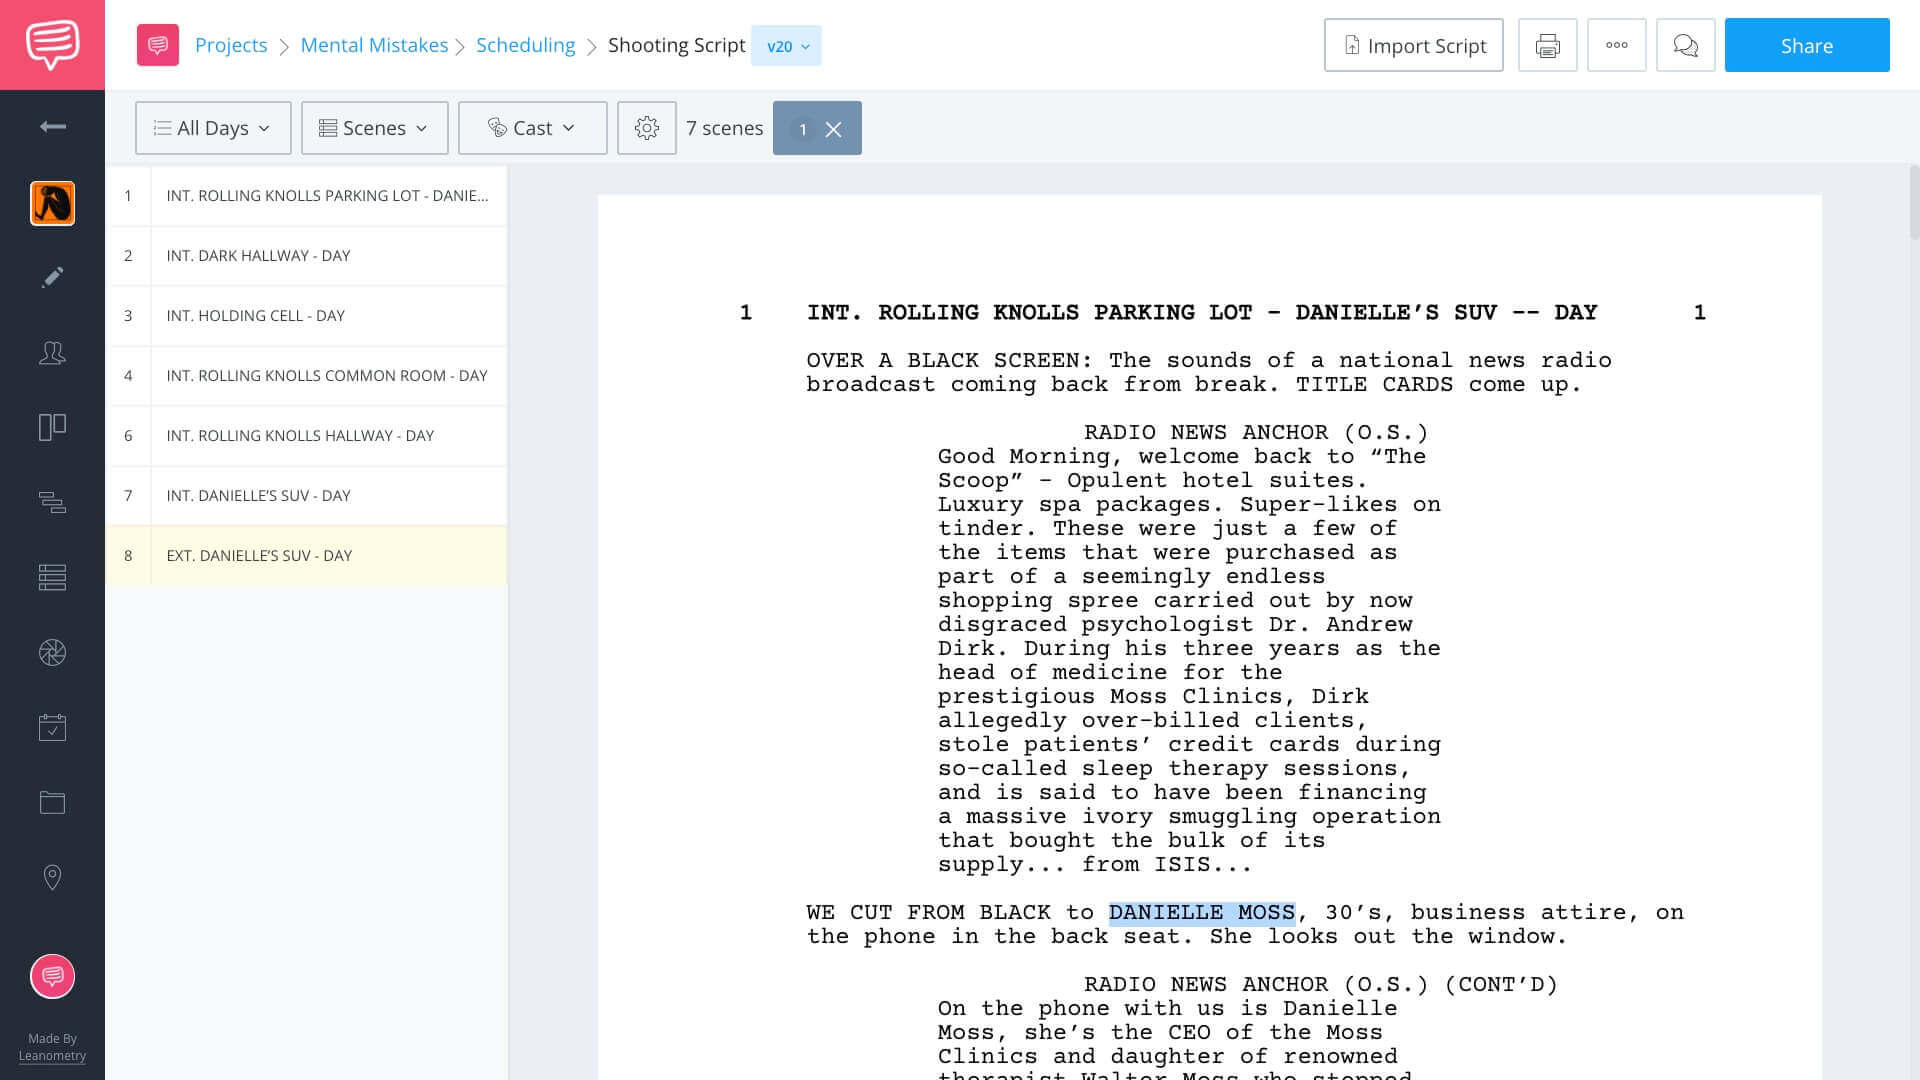 What Does a Director Do - Mental Mistakes Shooting Script App Tie-In - StudioBinder